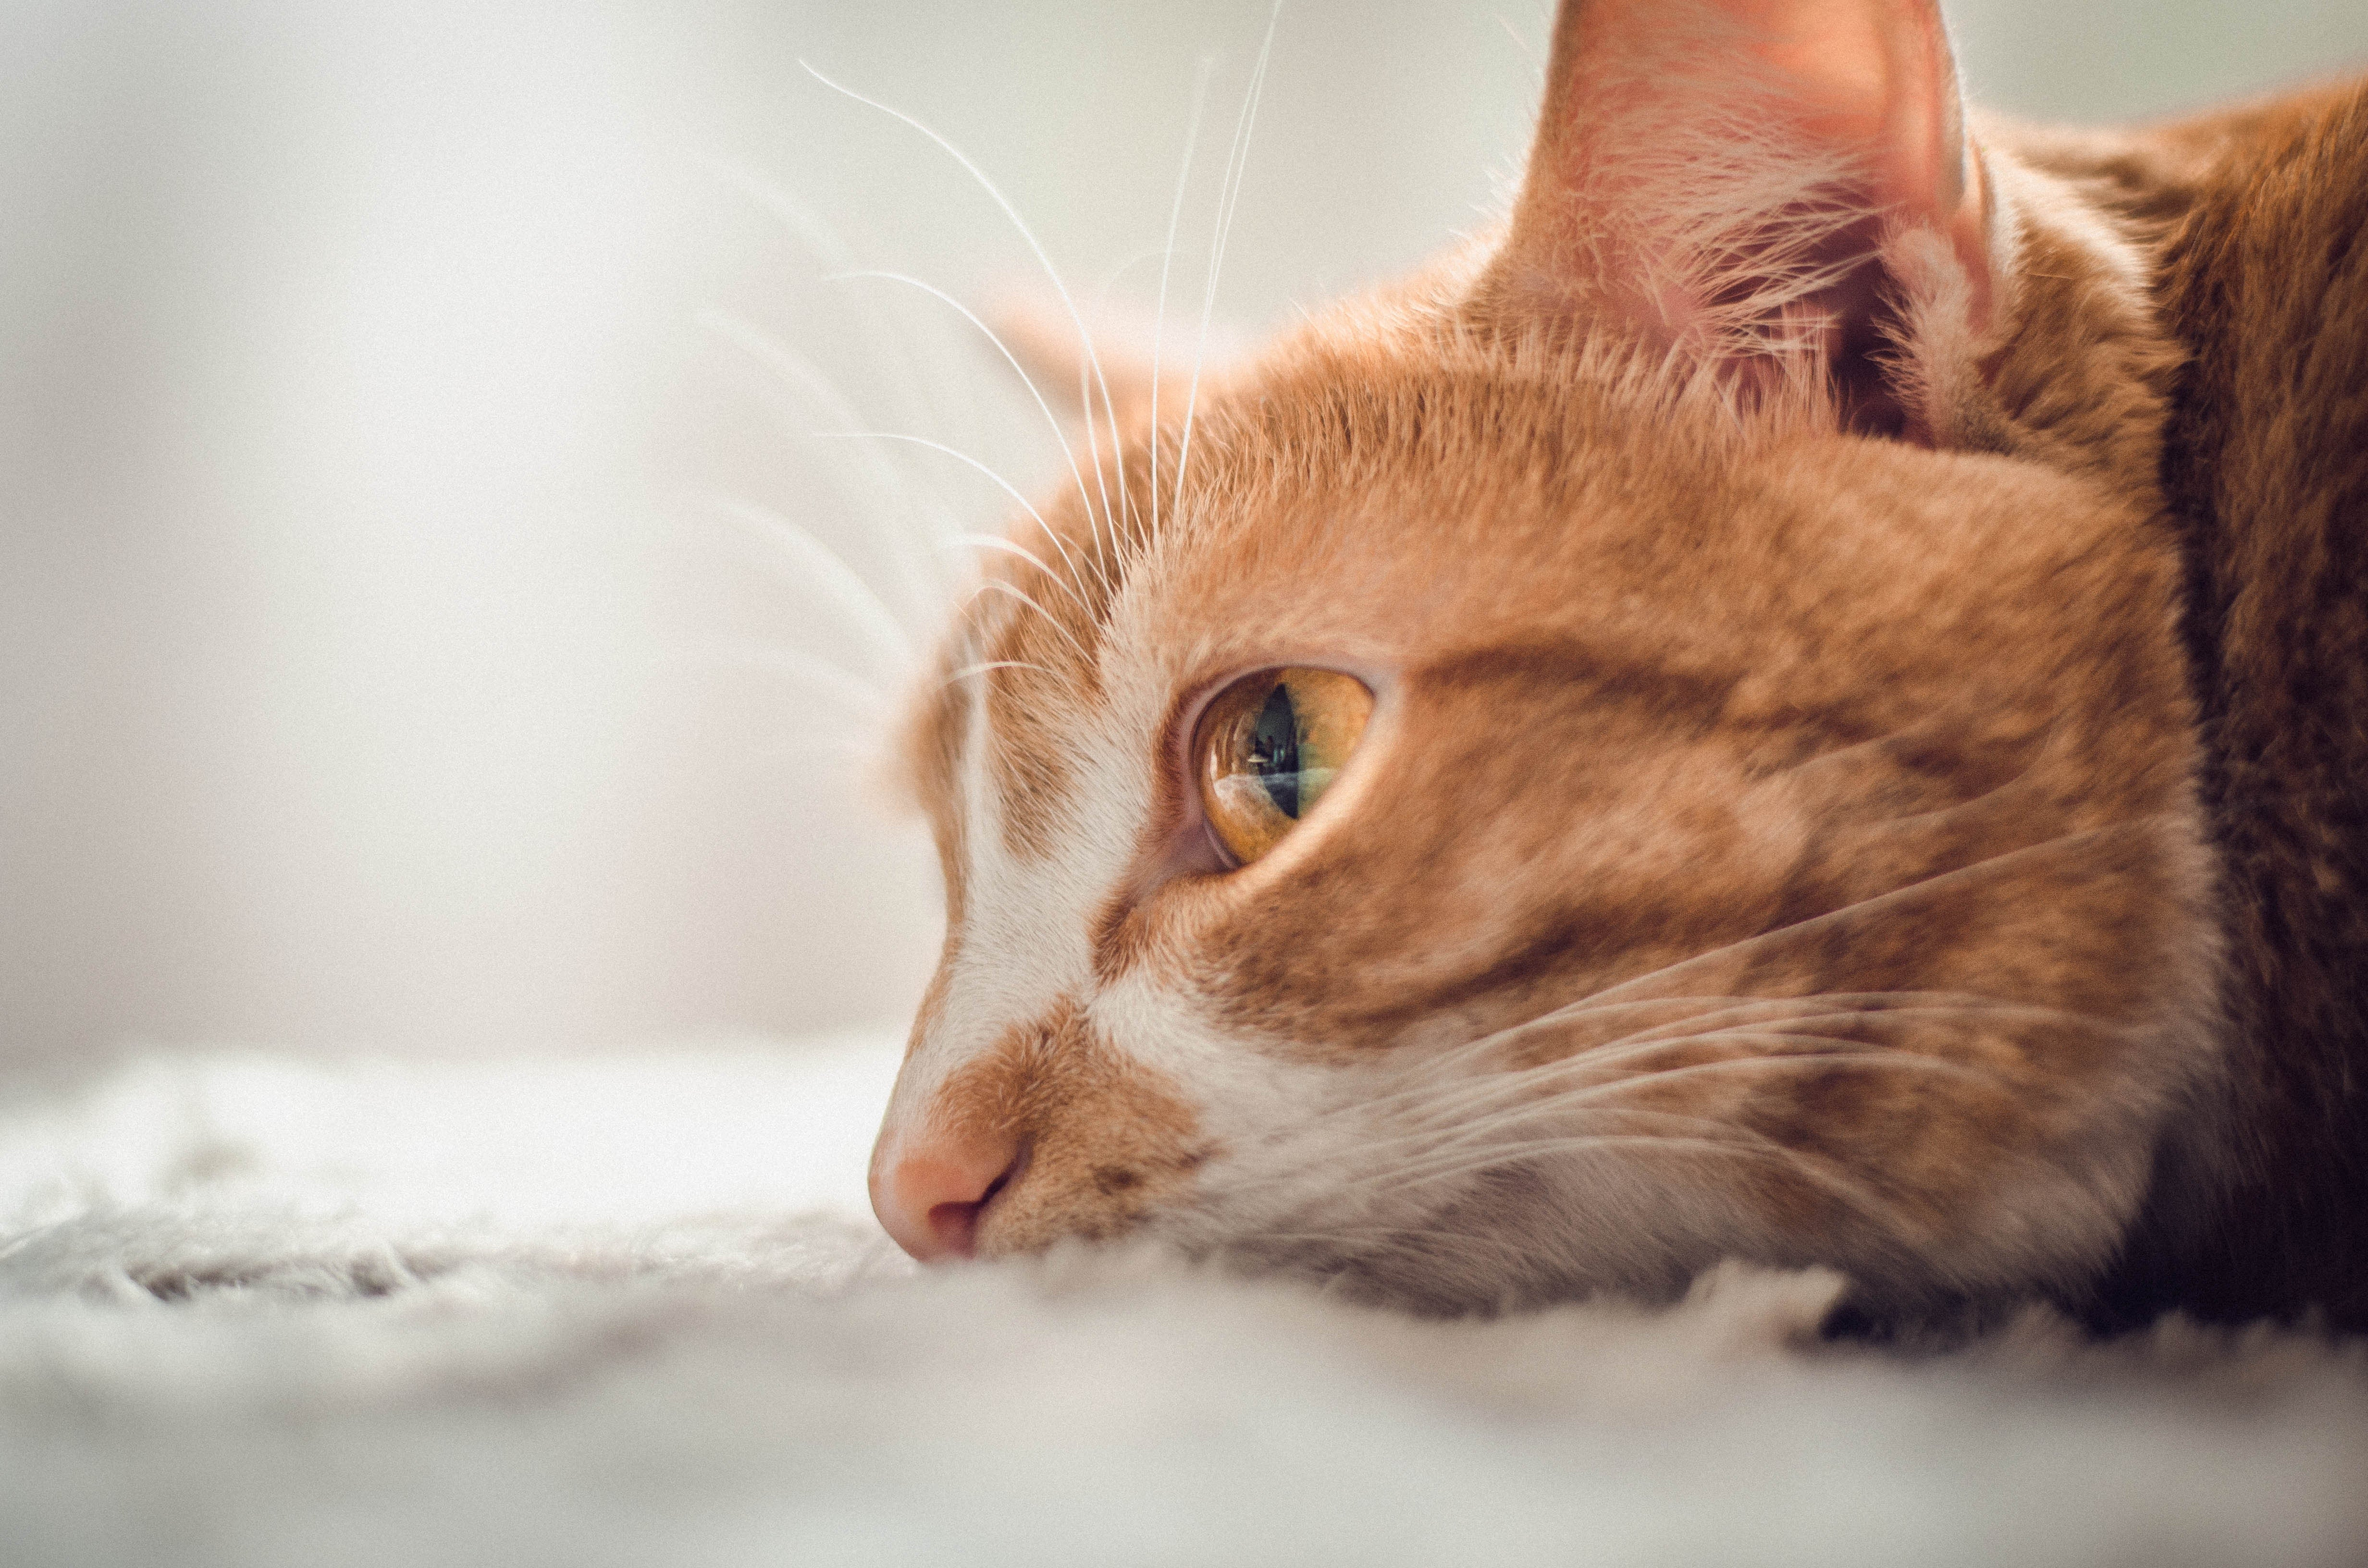 How can you tell if your cat's not well?